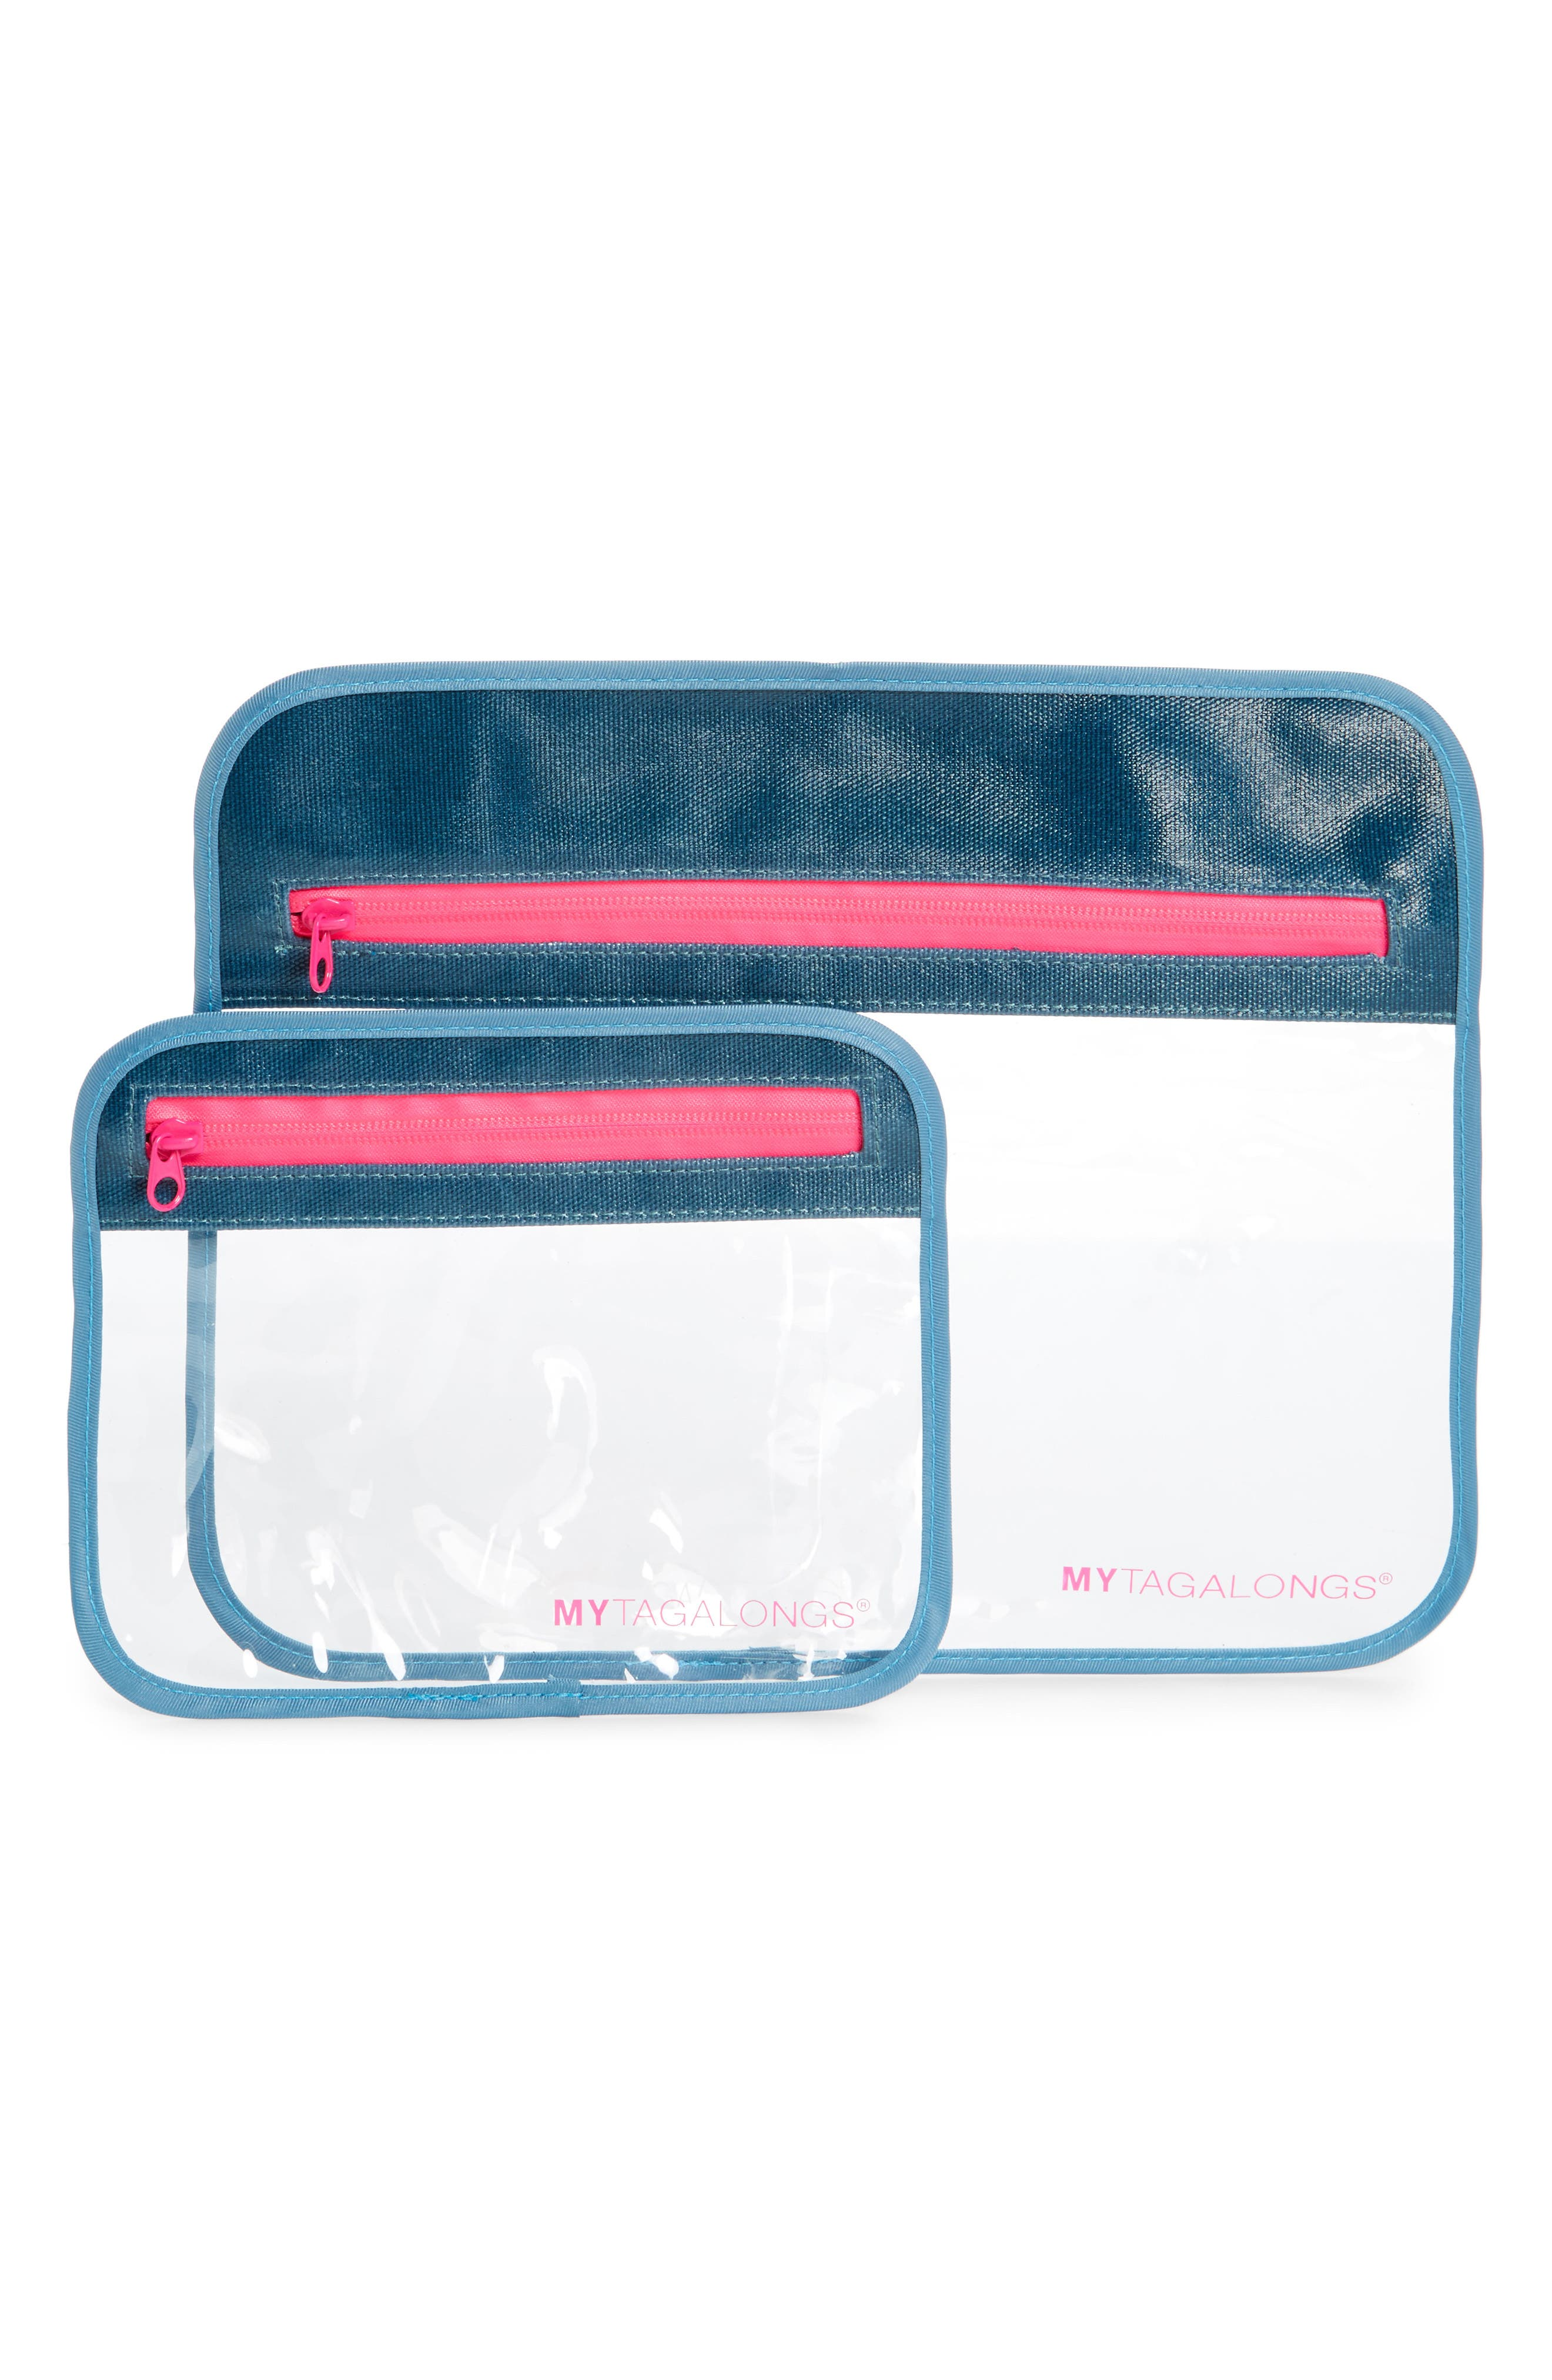 2-Piece Splash Proof Tech Pouch Set,                         Main,                         color,